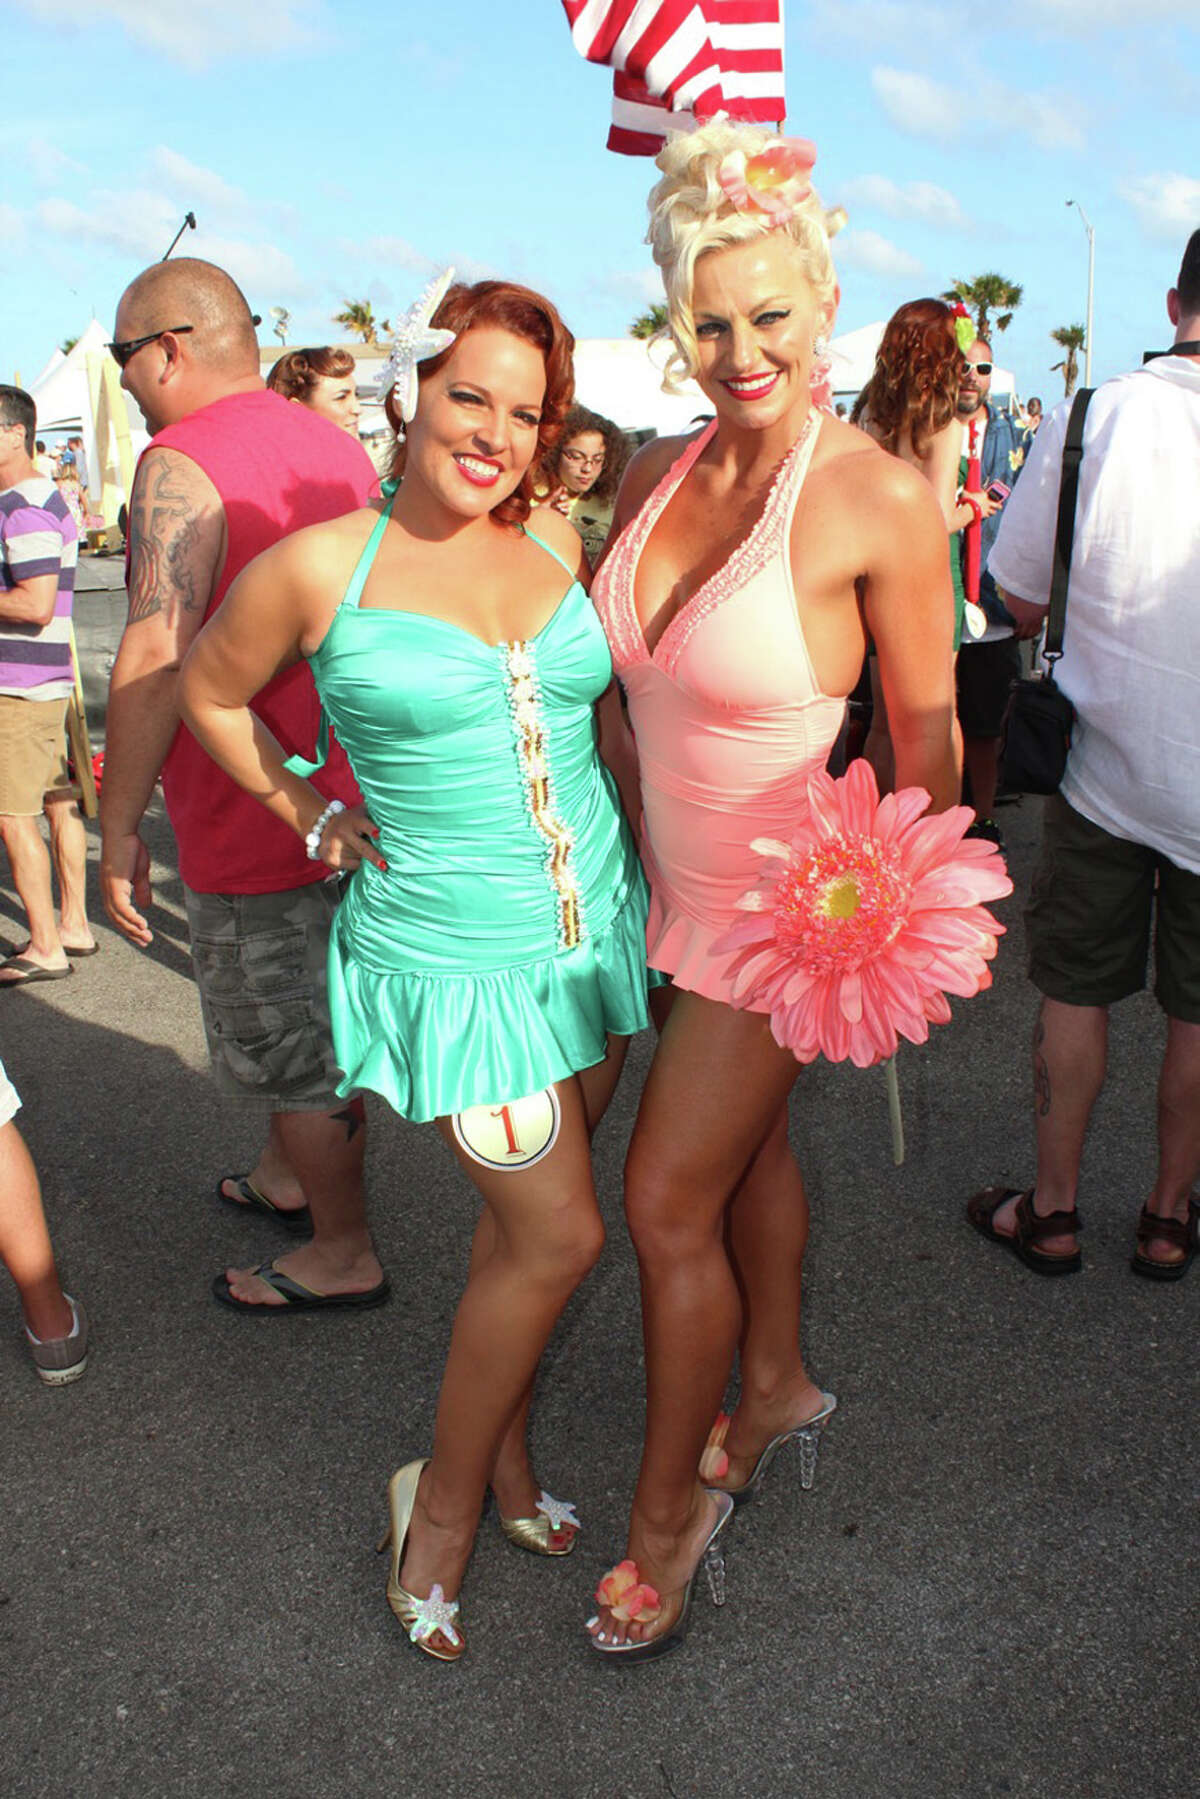 Check out the scene at the 2014 Galveston Island Beach Revue Galveston Island Beach Revue, a vintage-inspired event that was held May 16-17, is the island's official kickoff into the summer season.